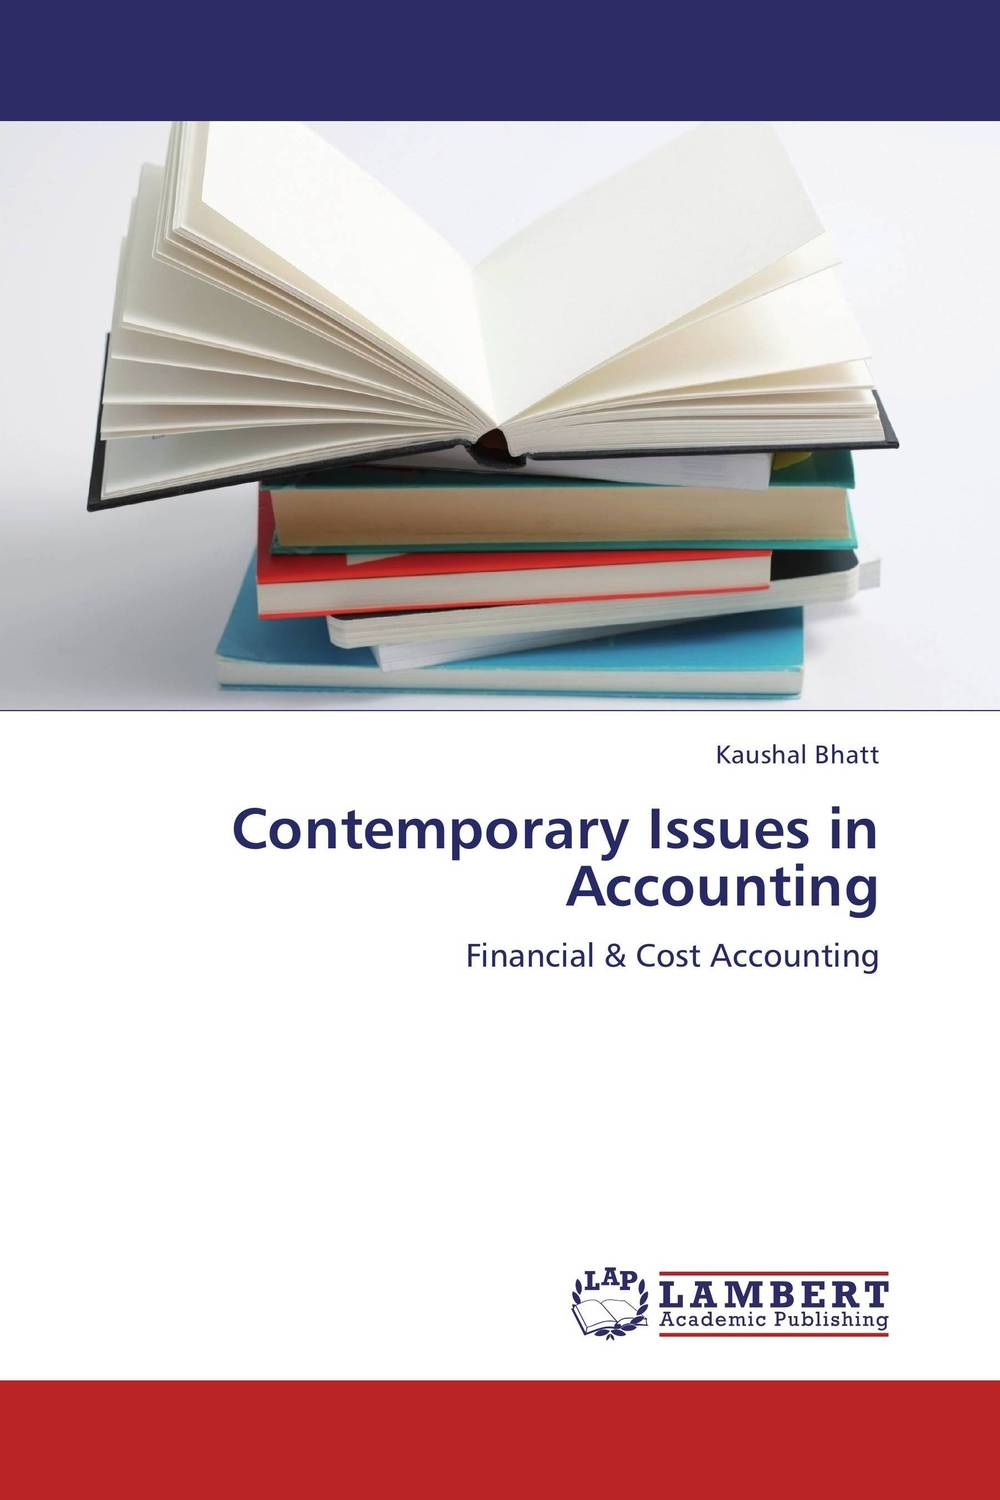 Contemporary Issues in Accounting icaa the institute of chartered accountants in australia financial reporting handbook 2010